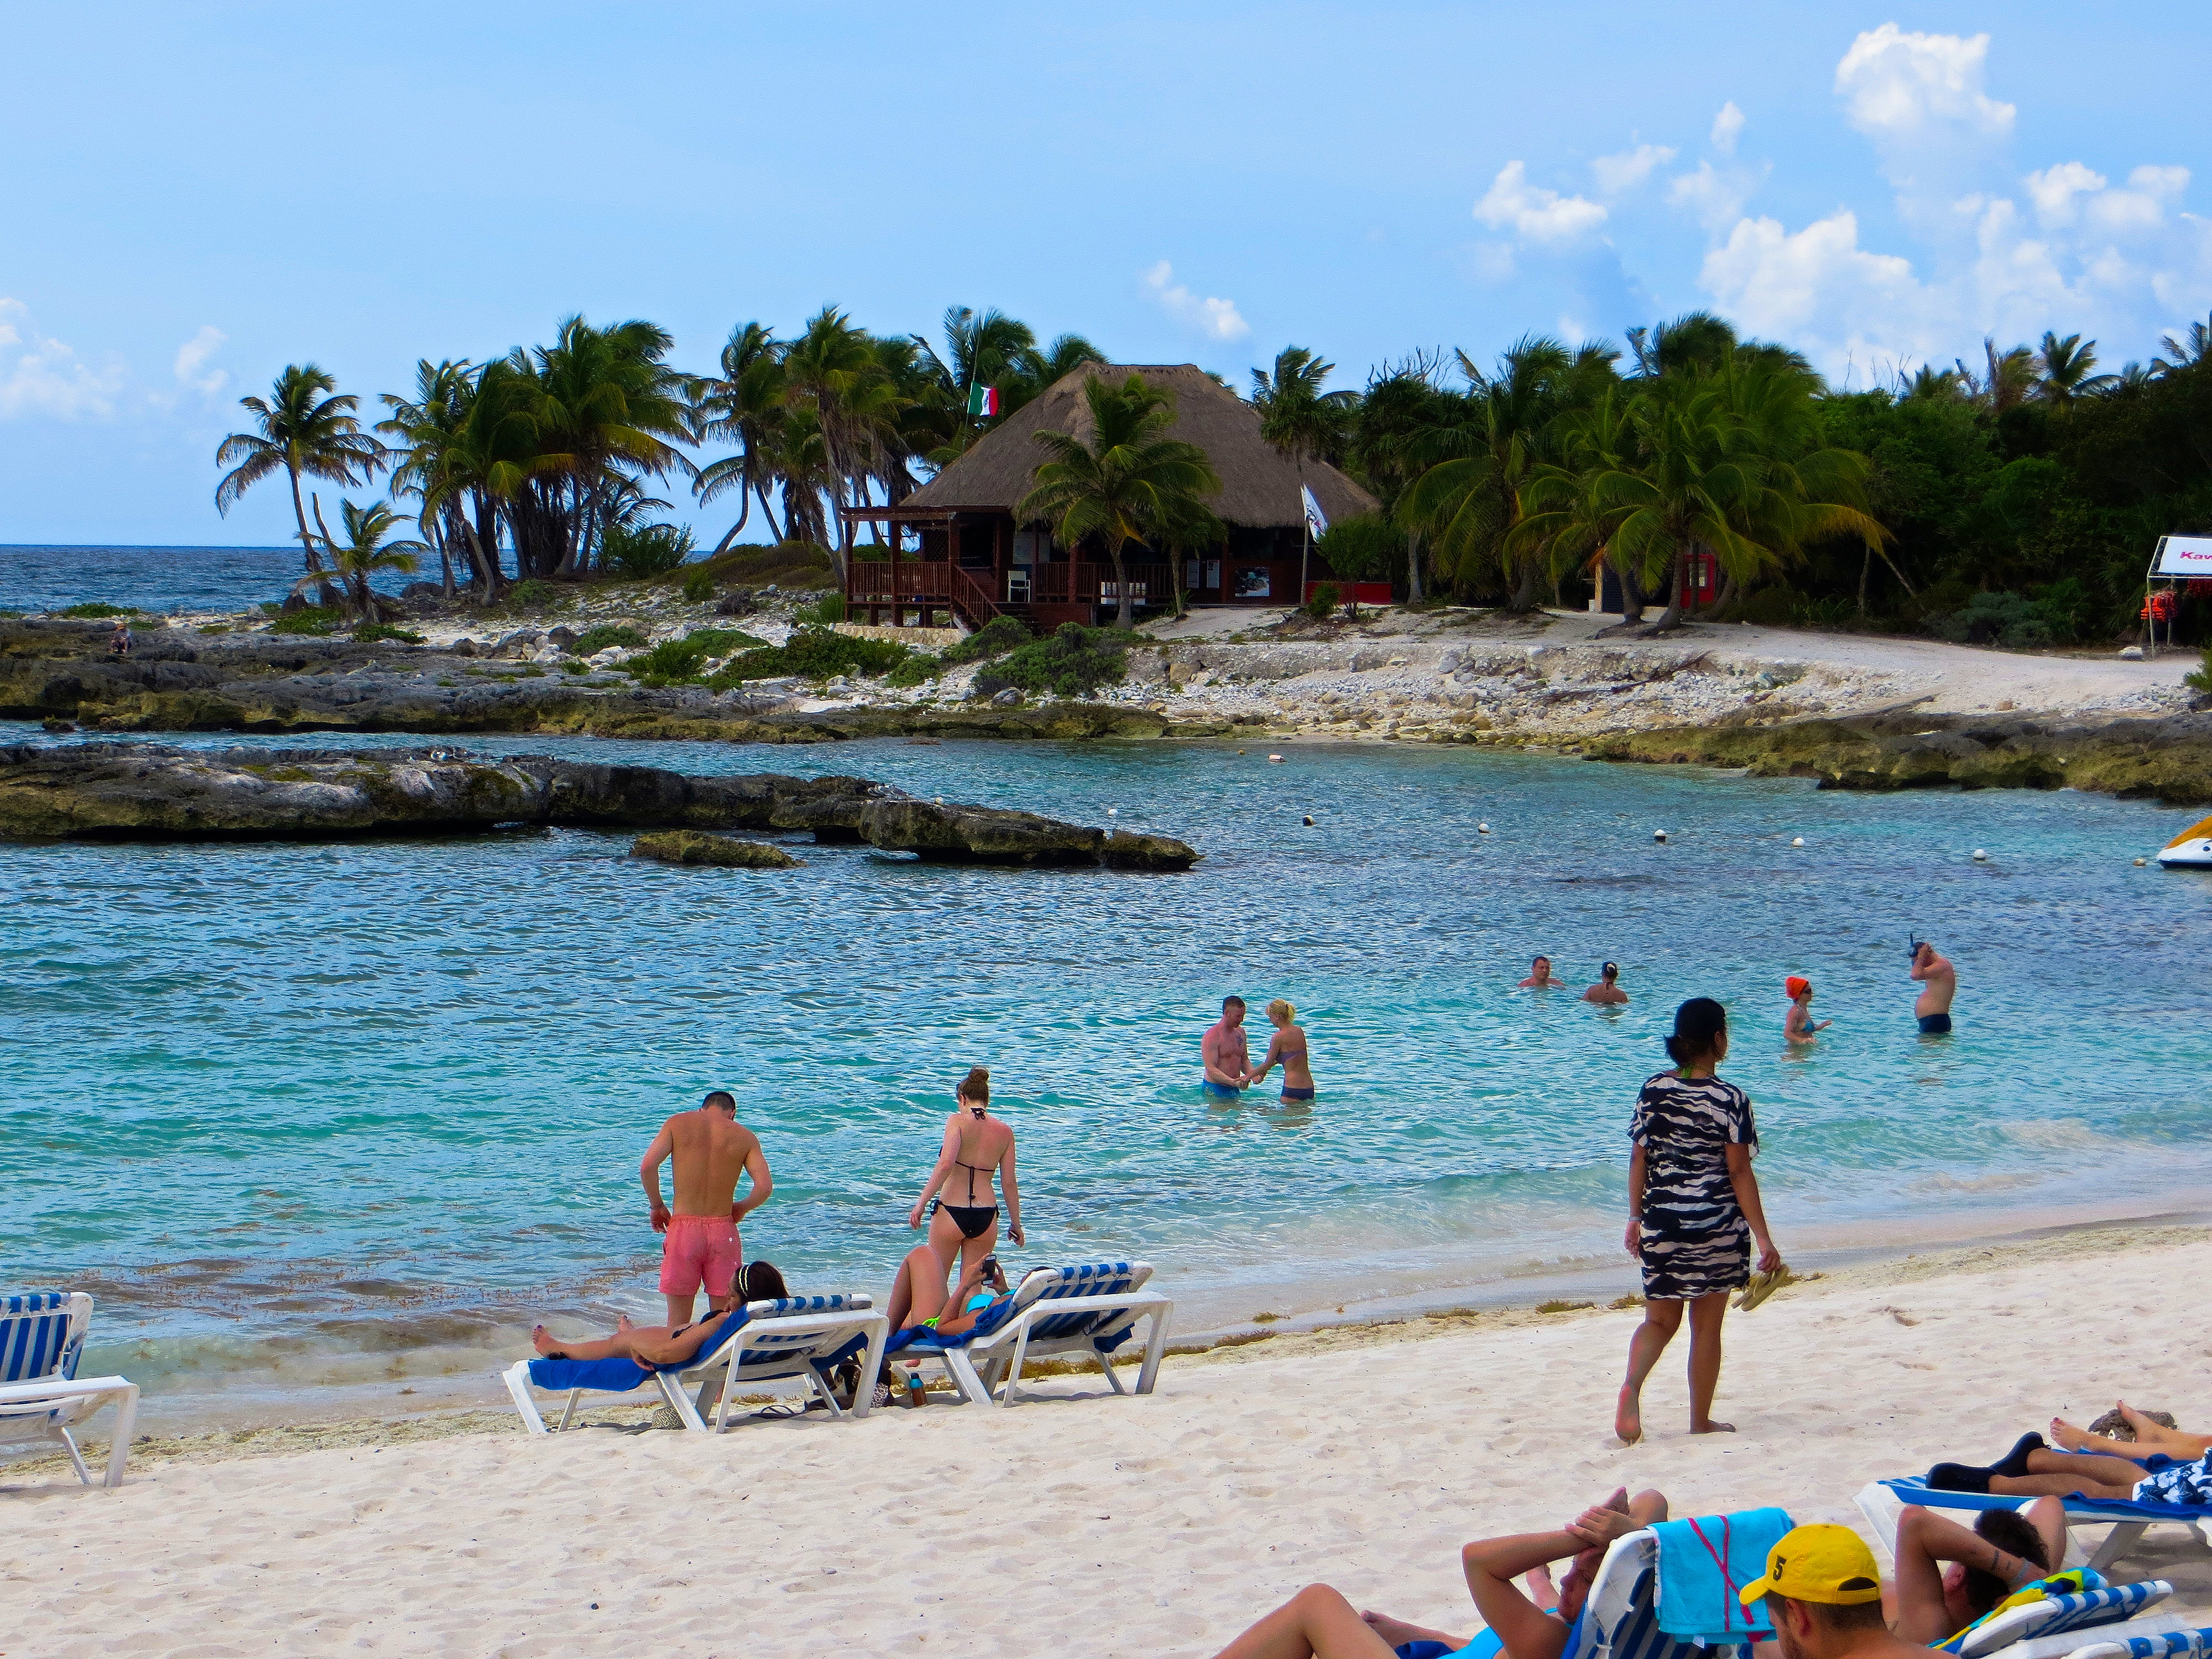 Beach at Grand Sirenis Resort, Mayan Rivieria